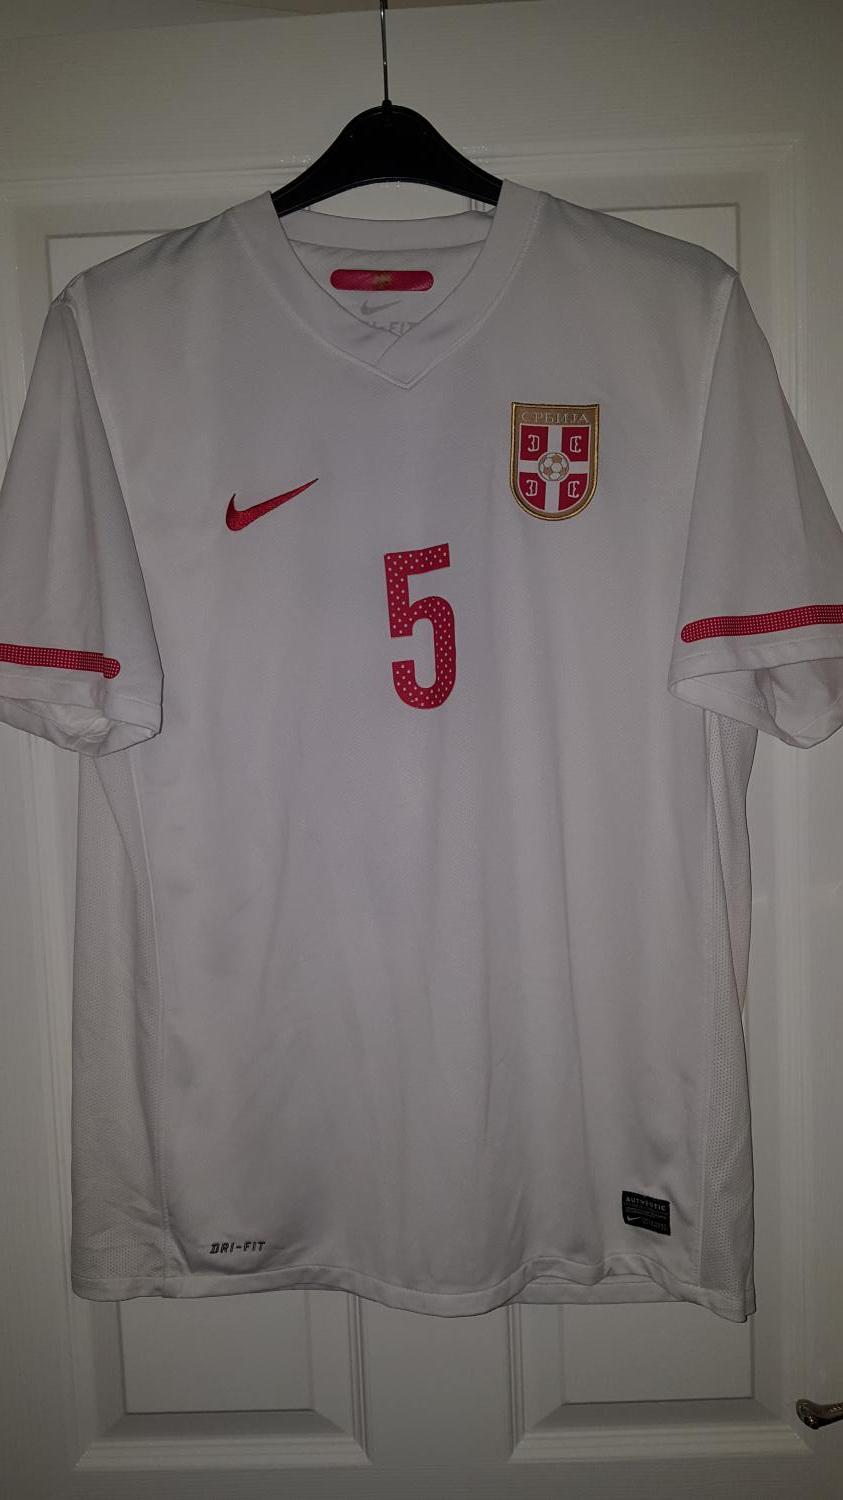 0a6444ecc Serbia Away Maillot de foot 2010 - 2011 ...